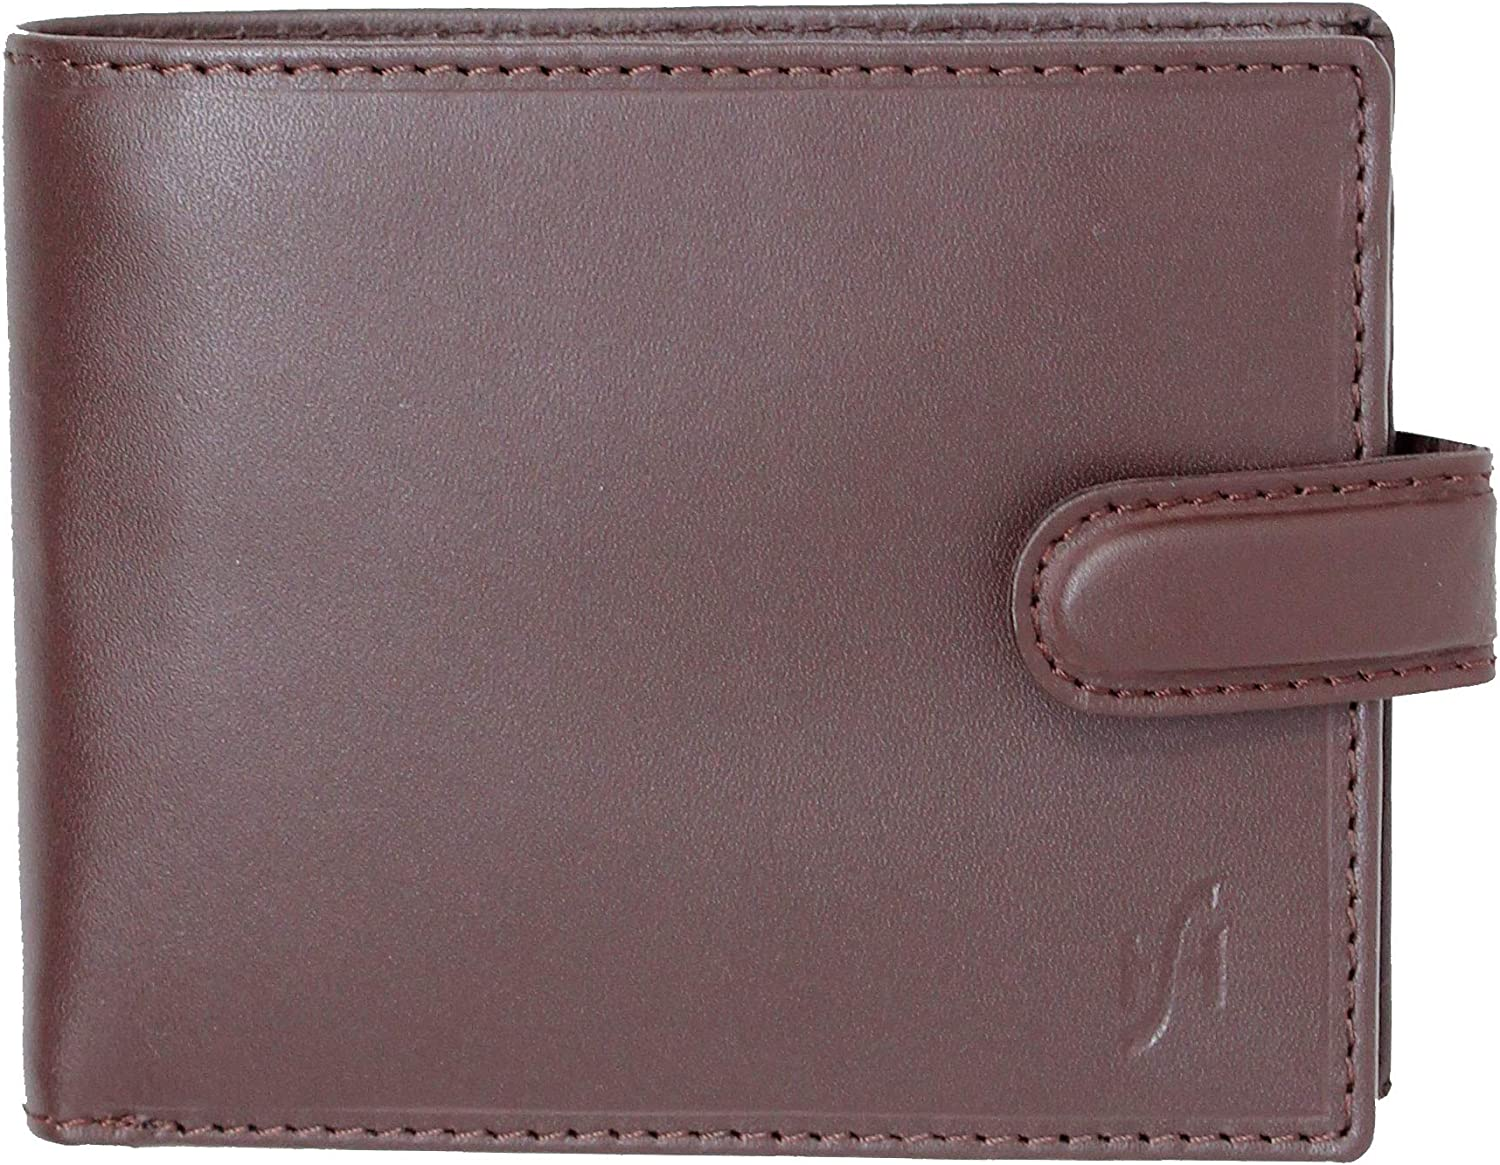 Starhide Mens RFID BLOCKING Zip Coin Pocket Distressed Leather Wallet 1100 Brown